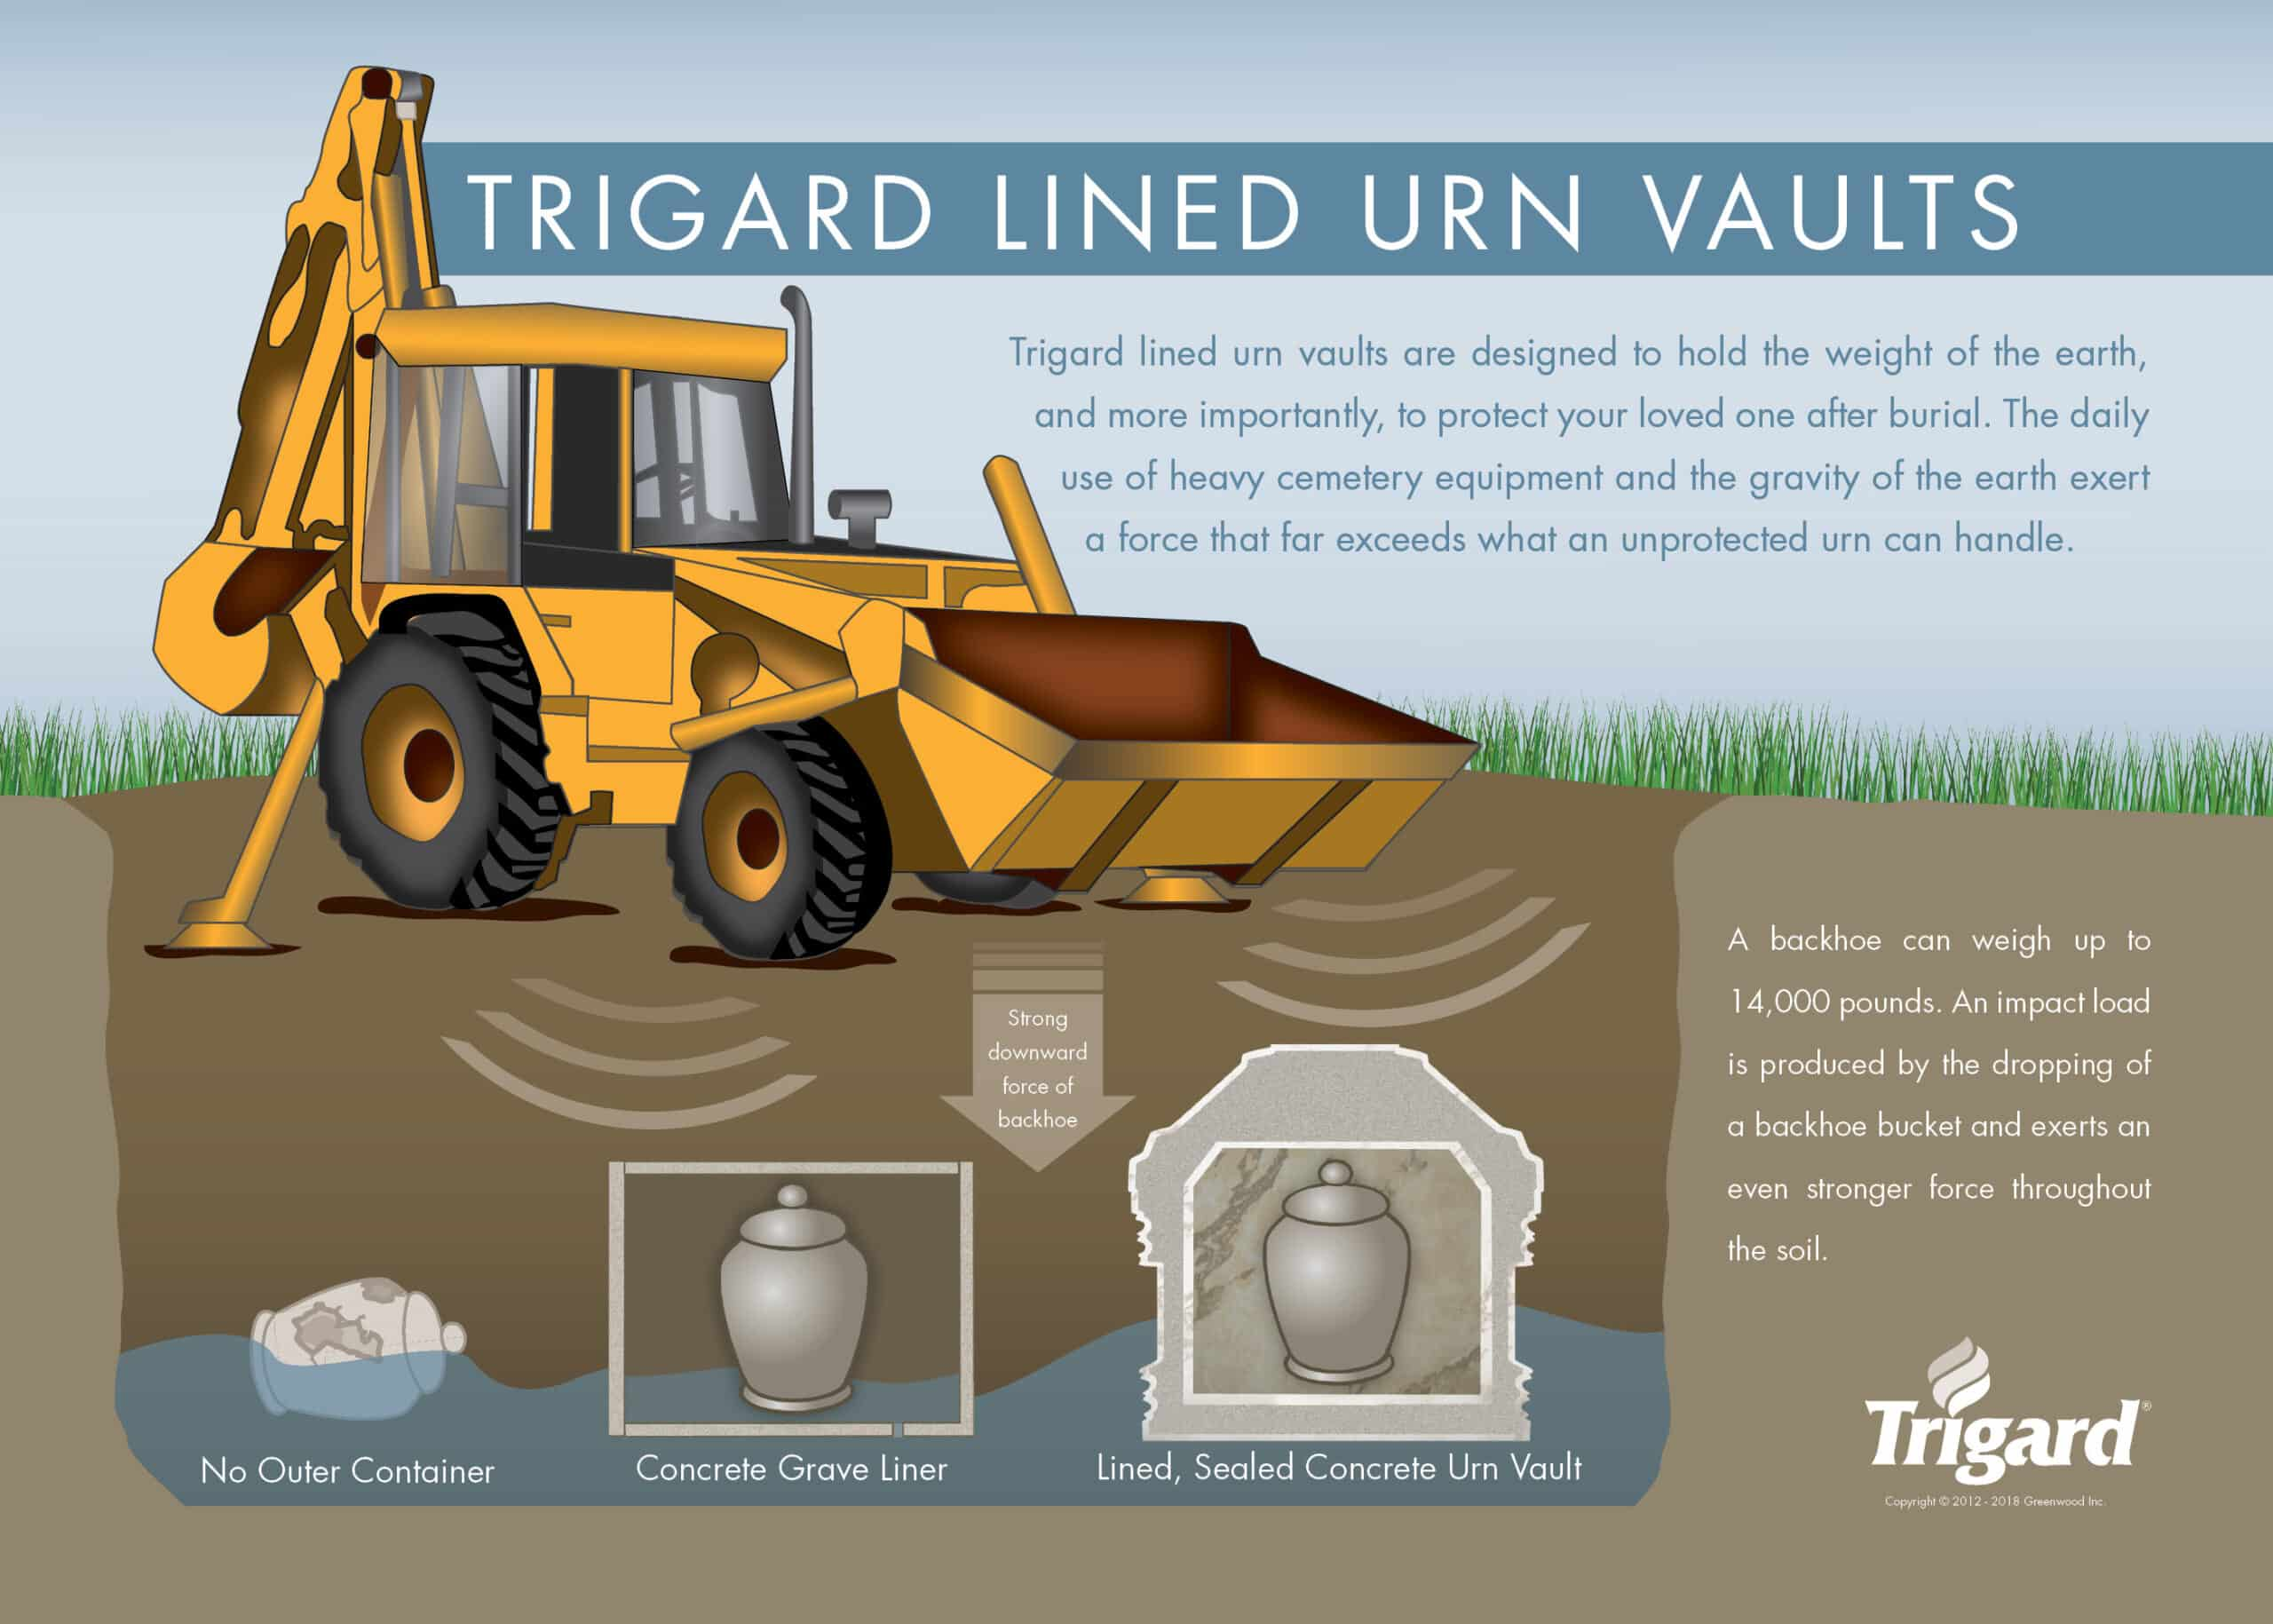 Trigard Lined Urn Vaults